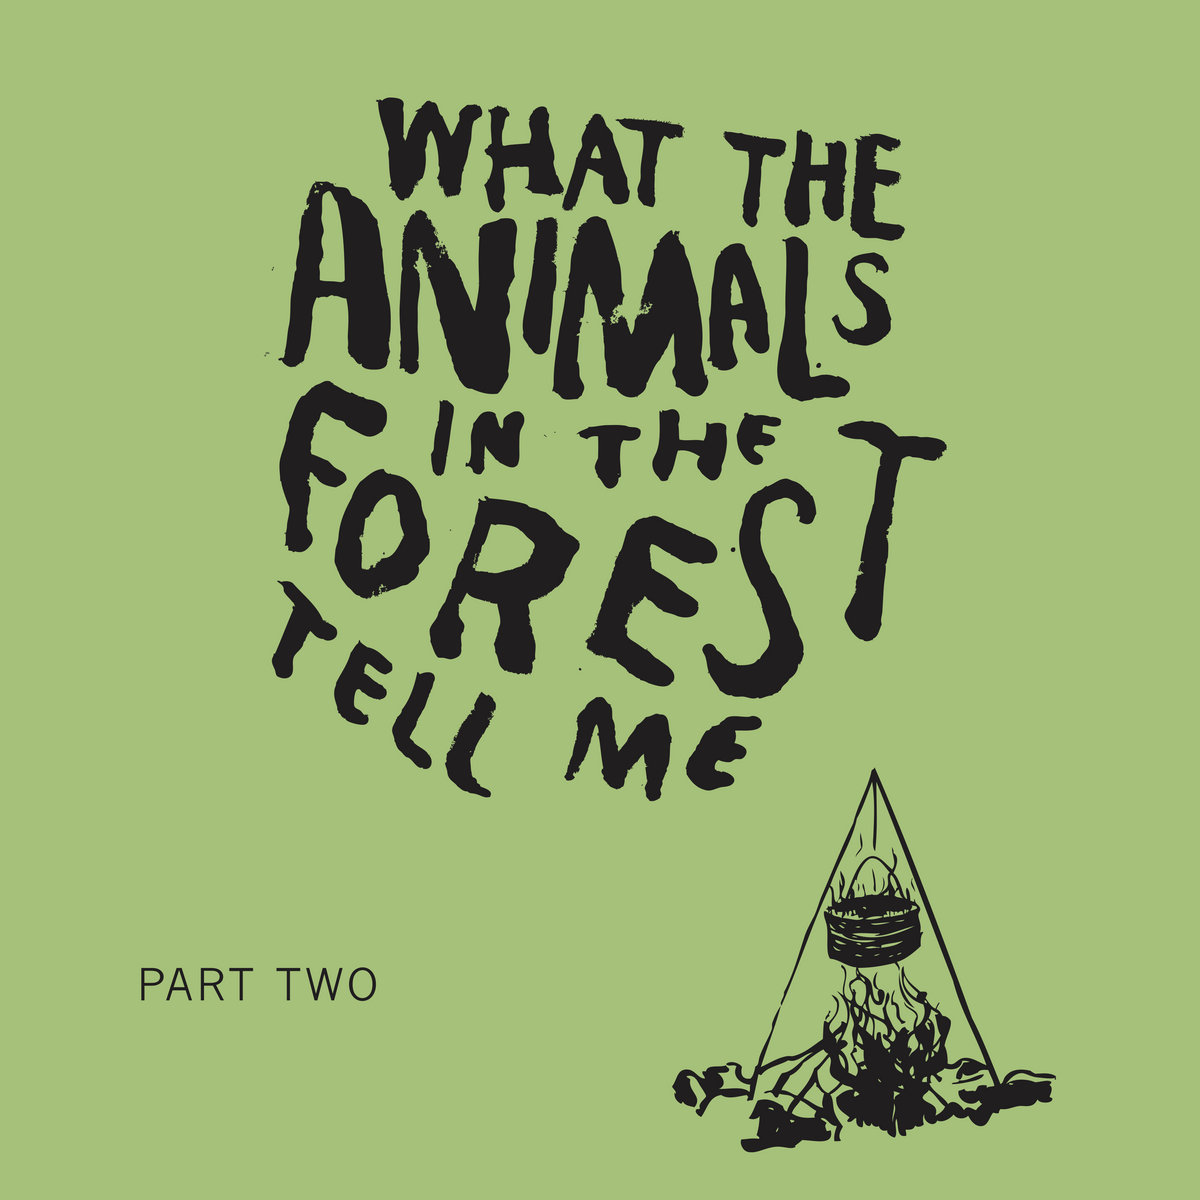 Ep. 6 | What the Animals in the Forest Tell Me (Part 2) by The Fruit Stare